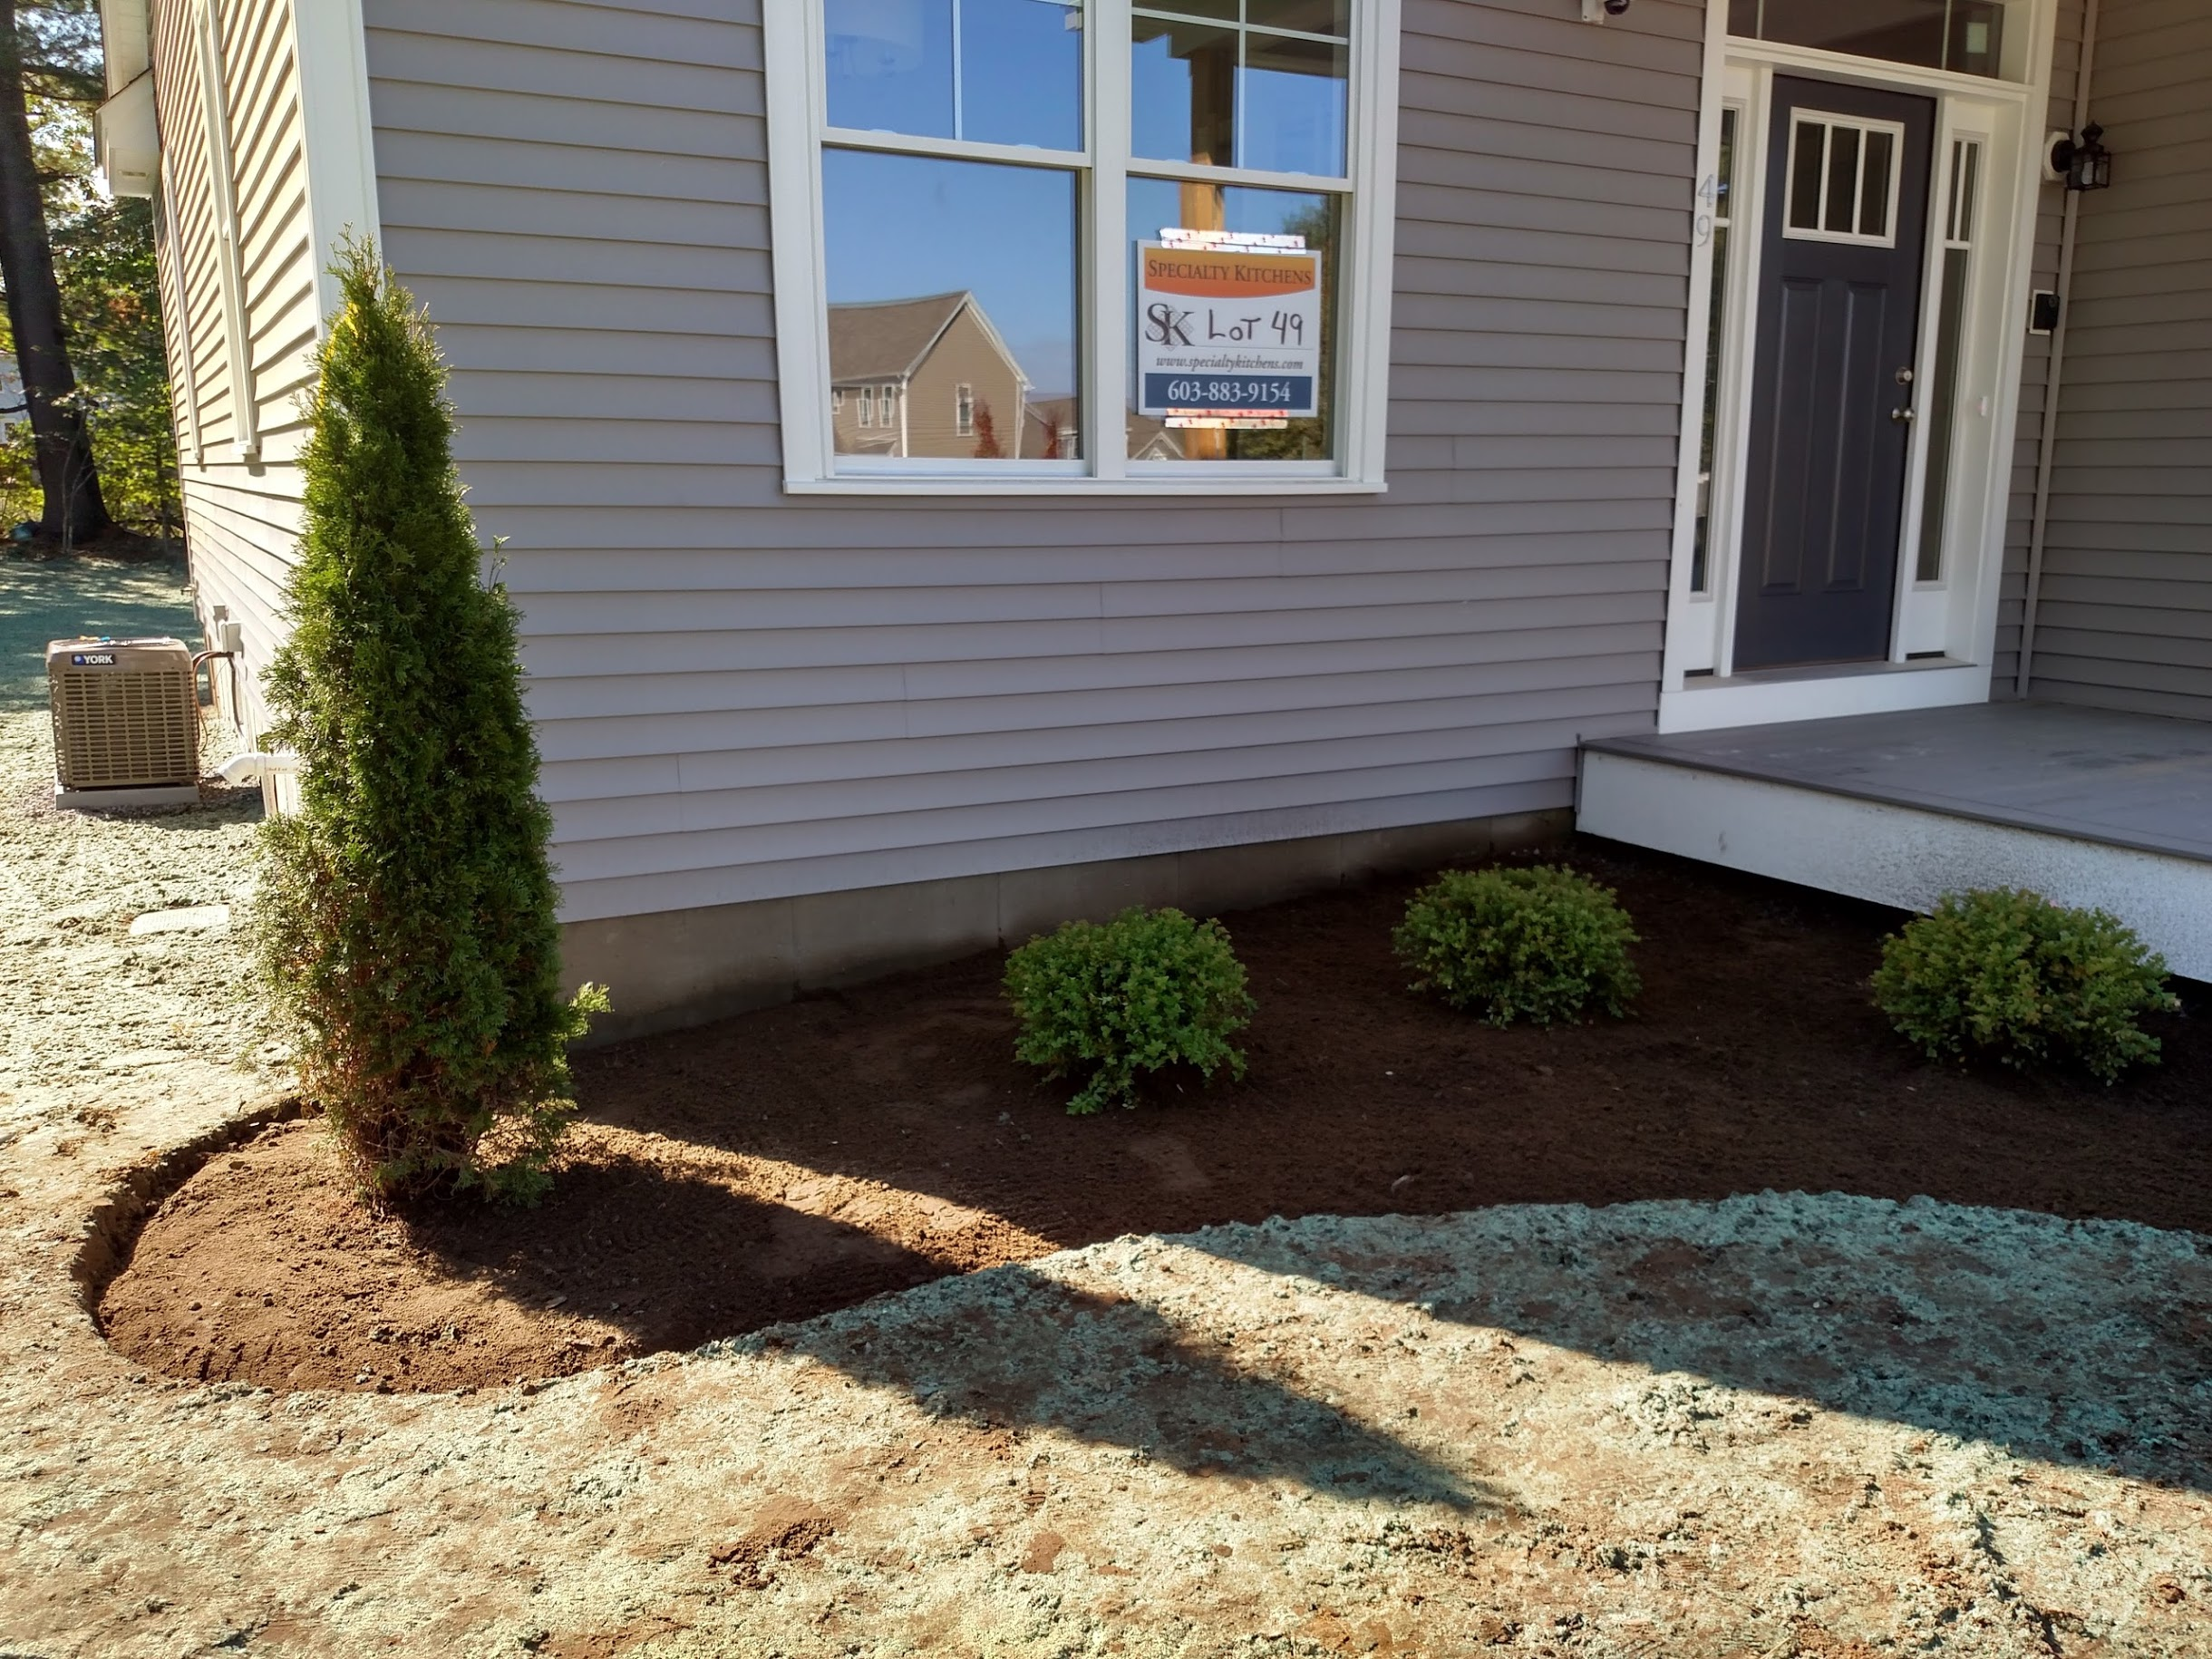 Contractor plantings on move-in day